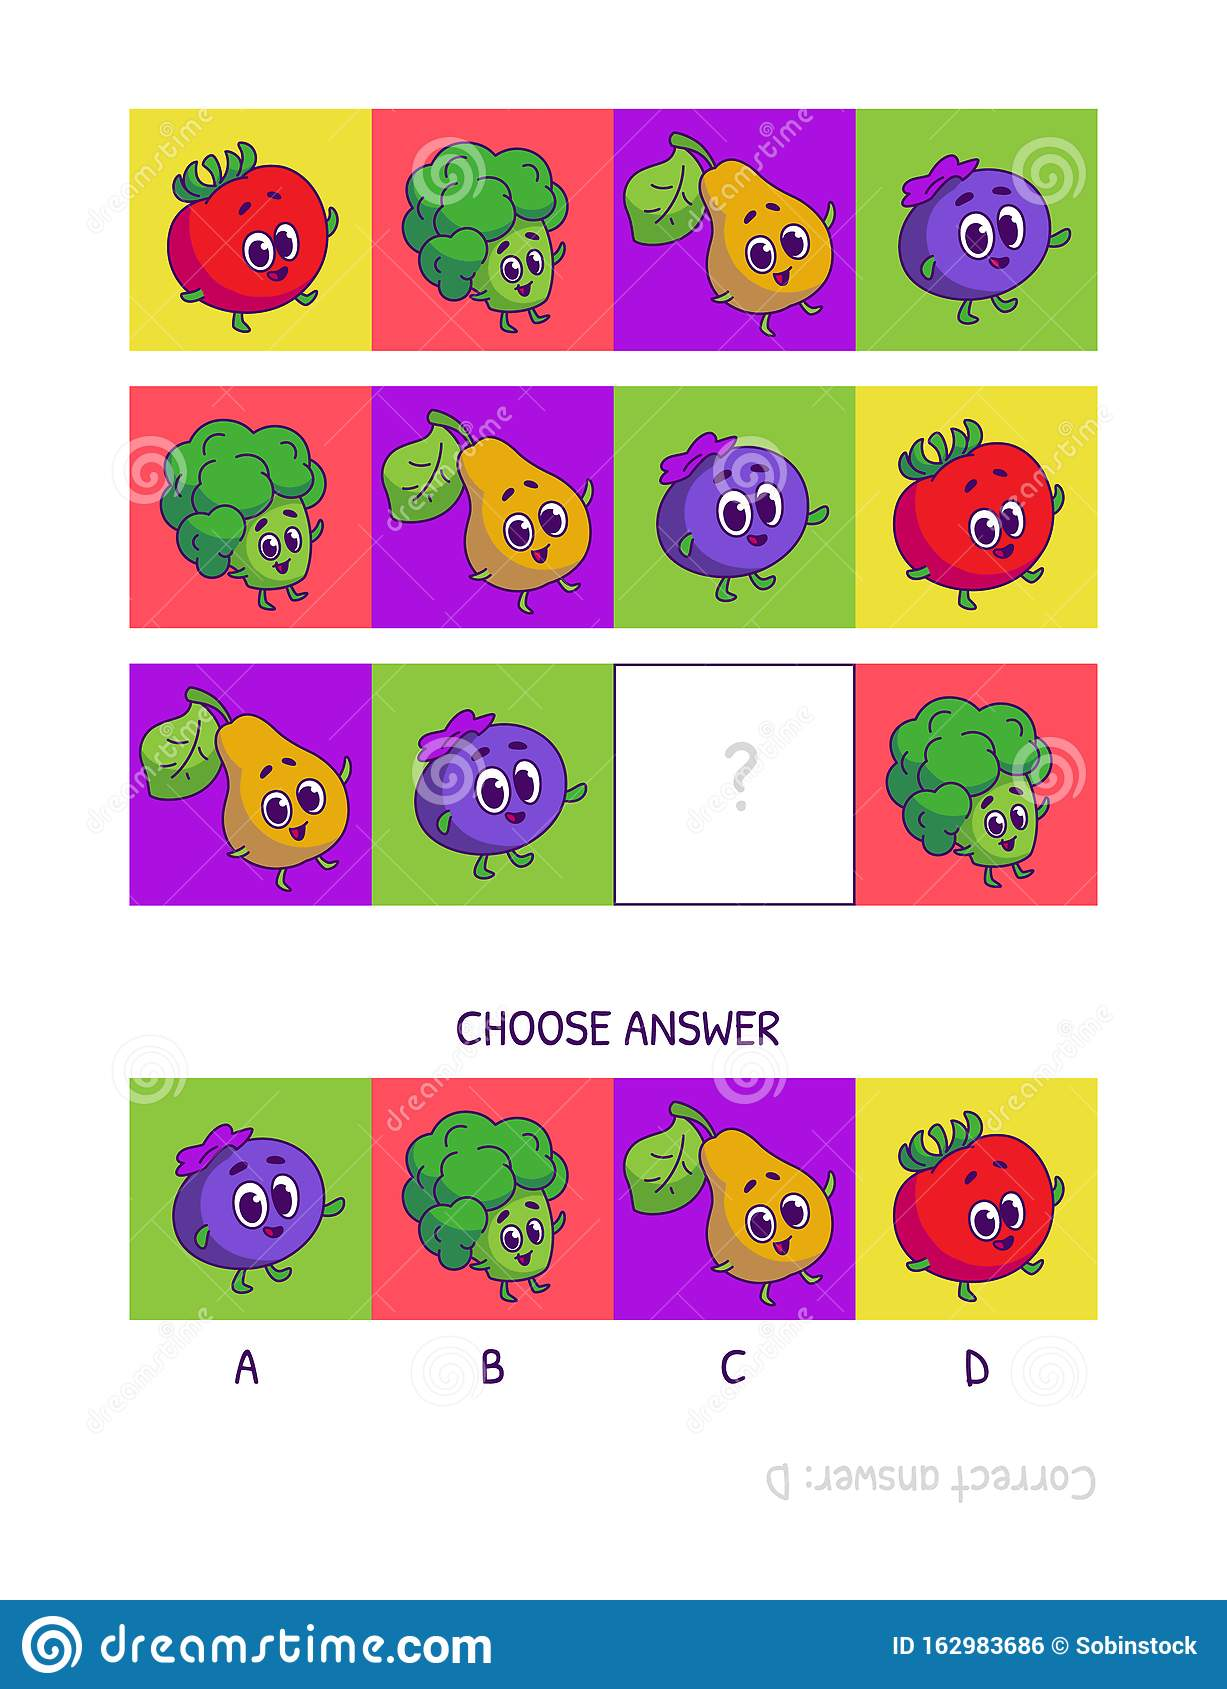 Cute Tomato Broccoli Pear Blueberries Logic Game For